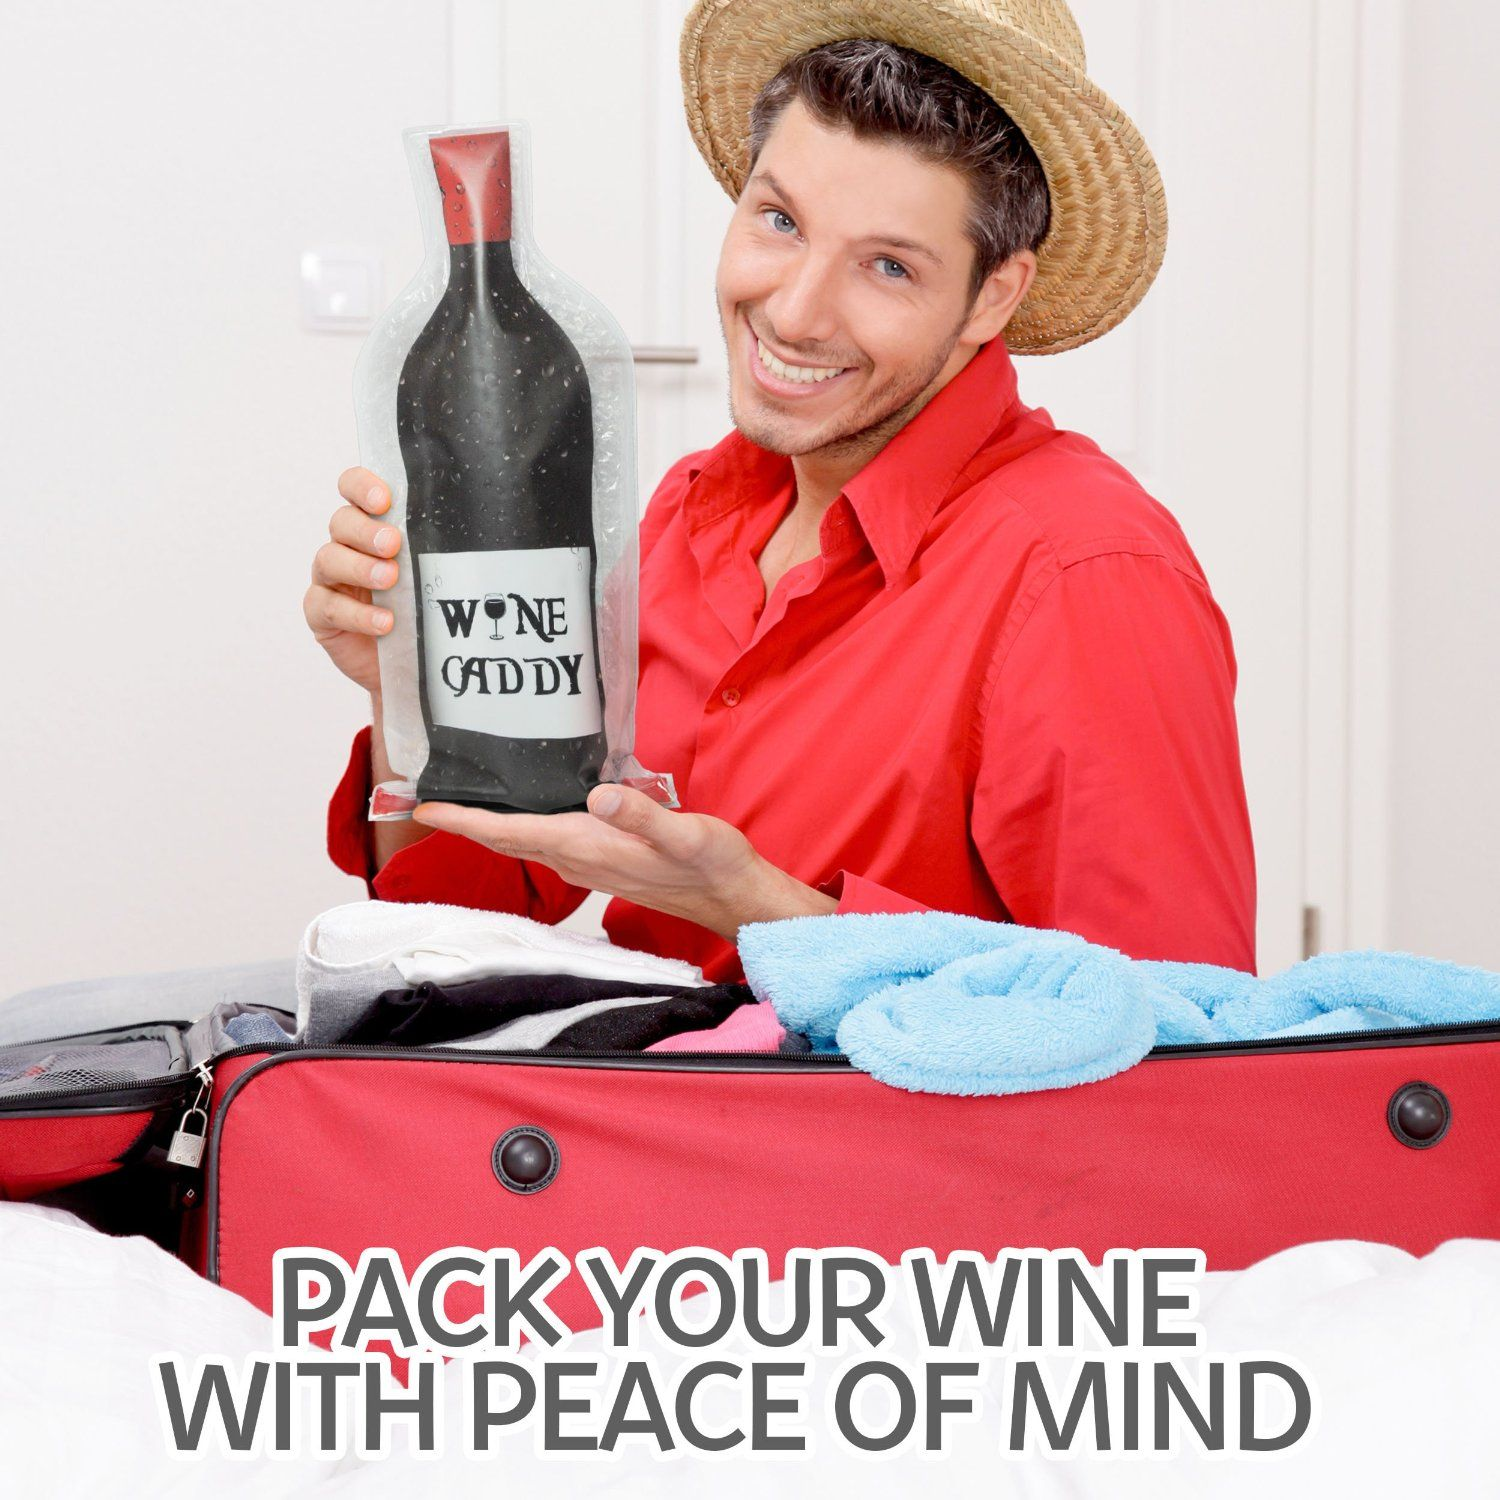 Wine Caddy Travel Wine Bottle Protector Now You Can